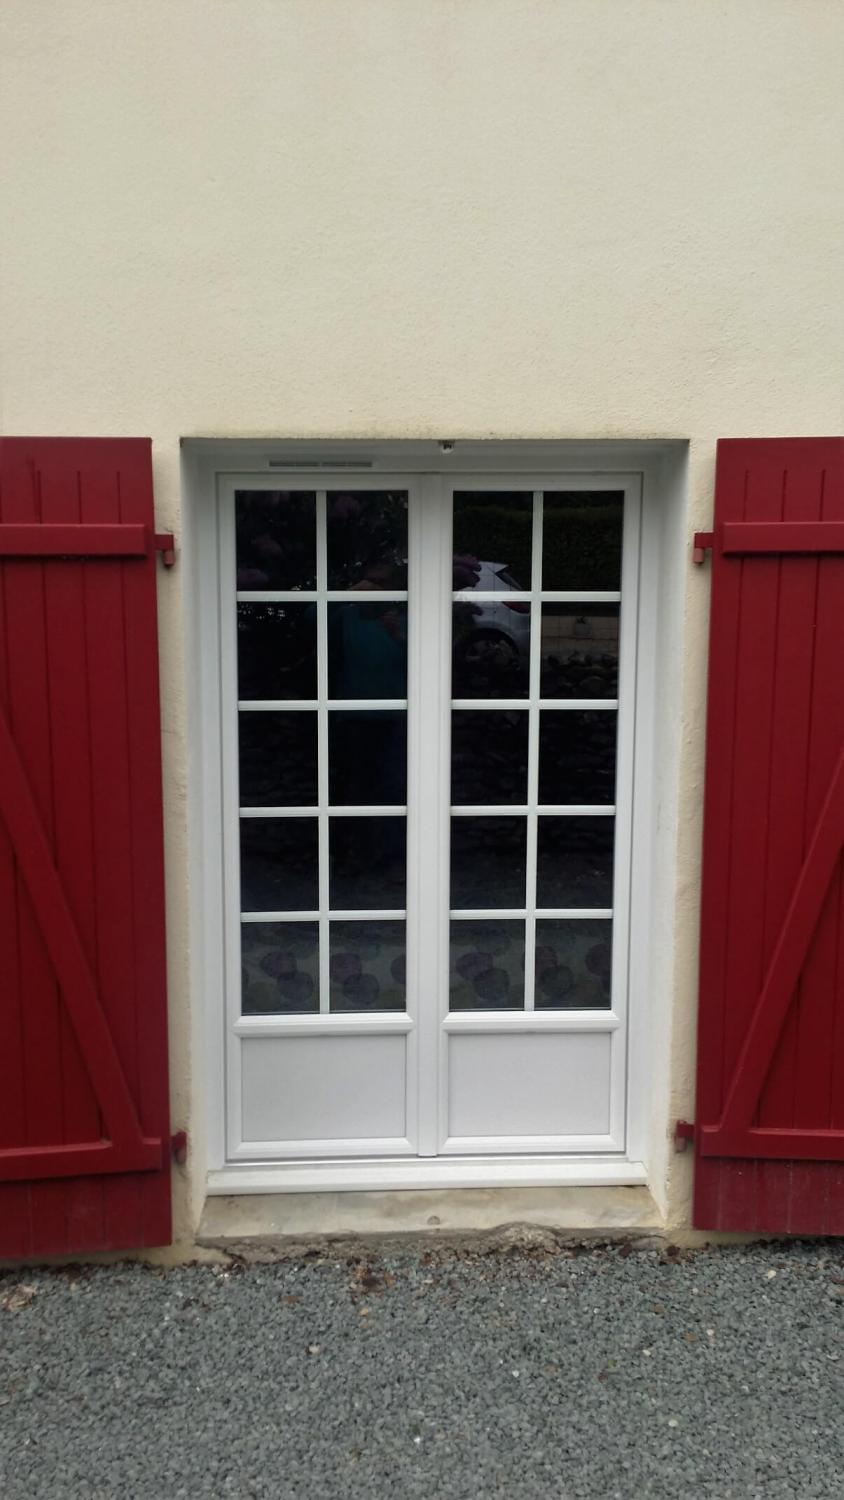 Pose de menuiserie pvc contact solabaie st maxire 79 for Porte fenetre renovation pvc